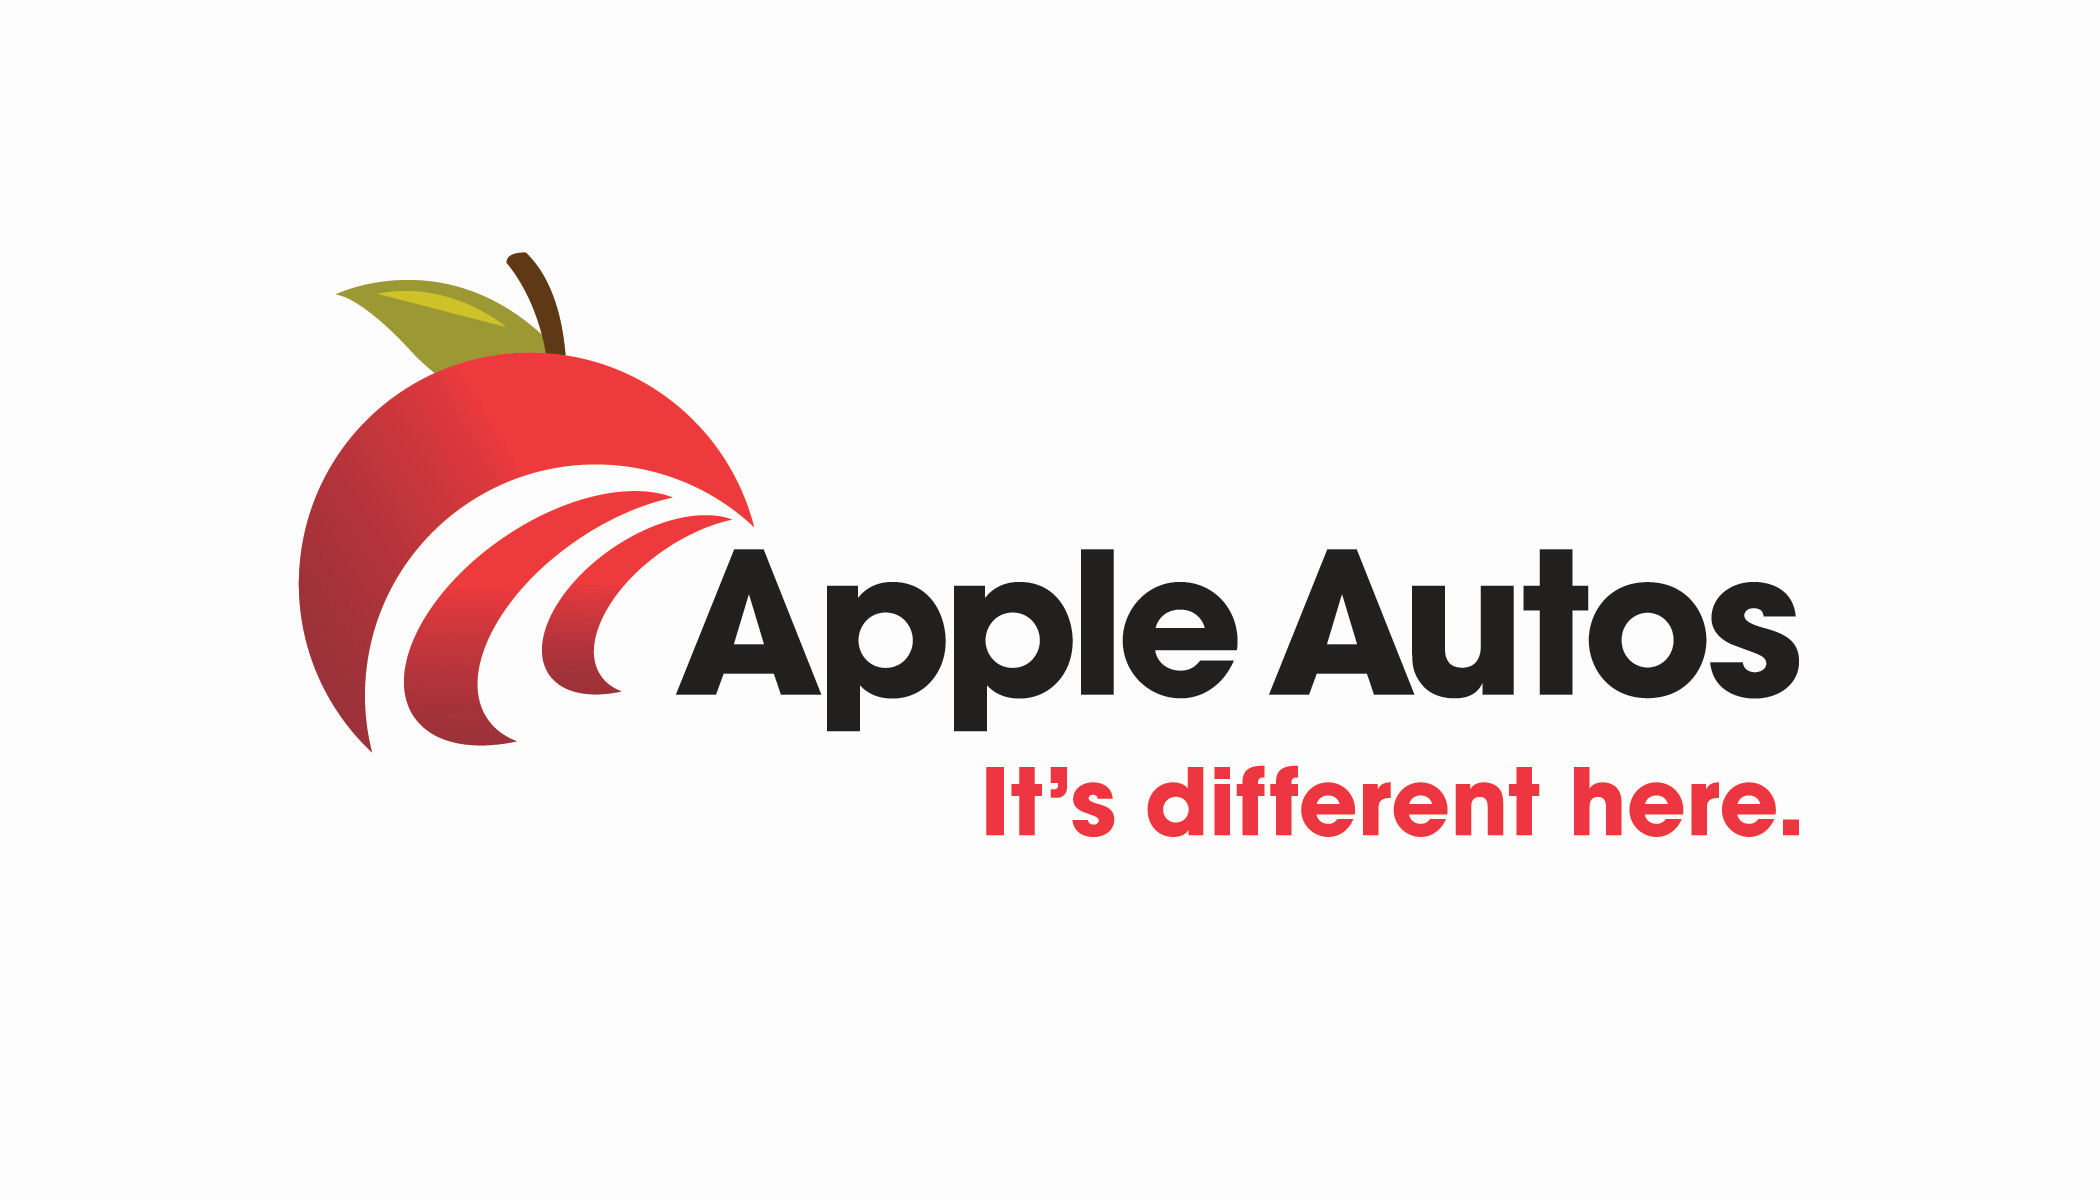 Apple Autos Company Logo